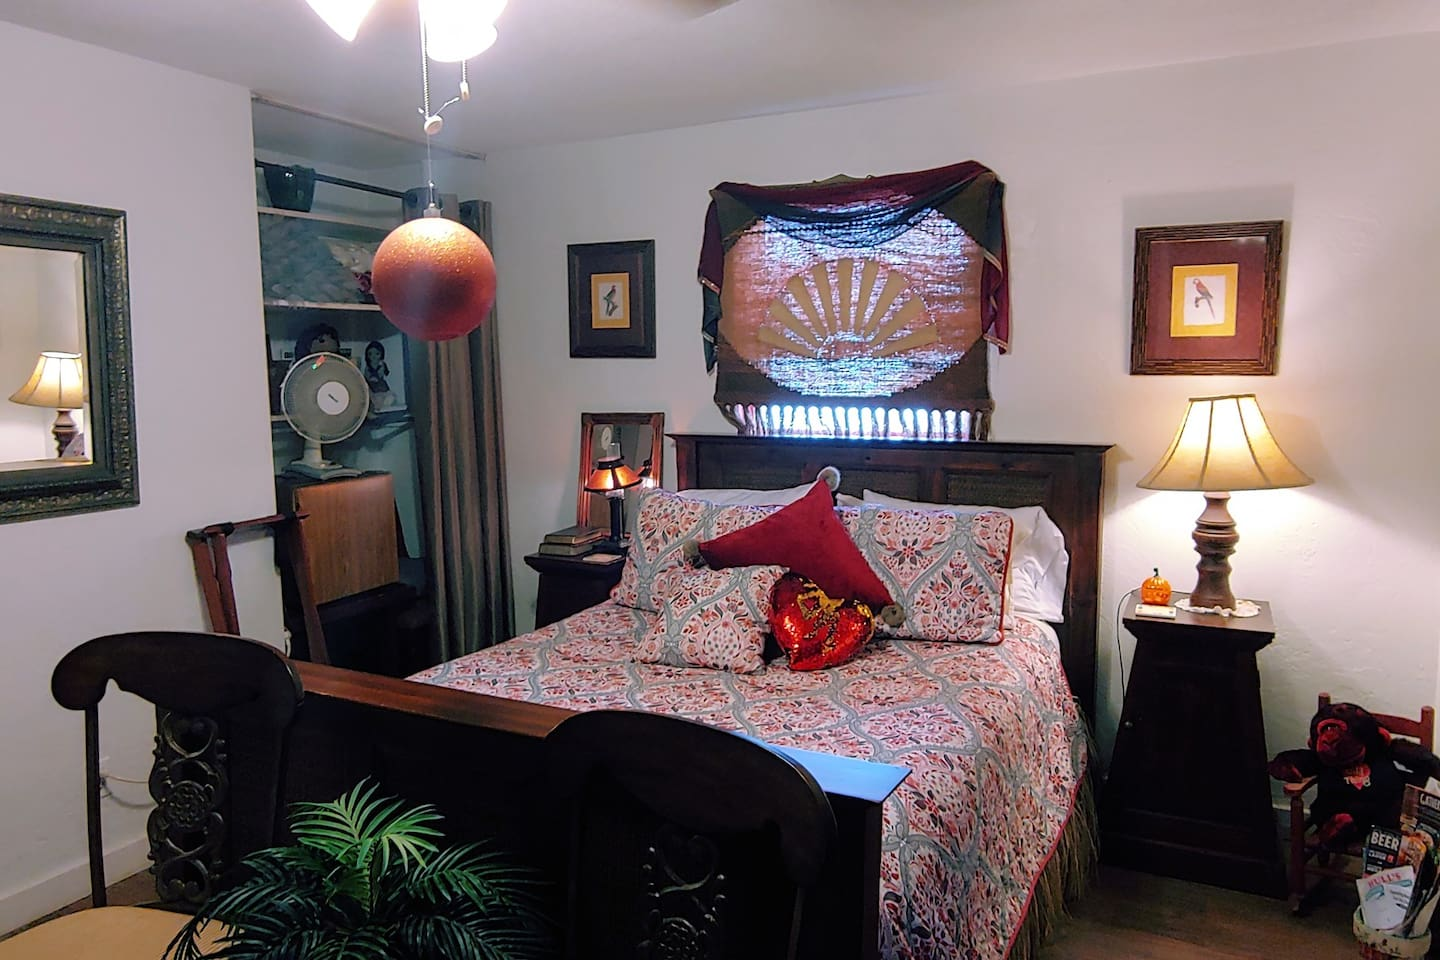 Warm and inviting Red Room cozy and full of Whimsy perfect place for a honeymoon retreat or a quiet weekend with a book